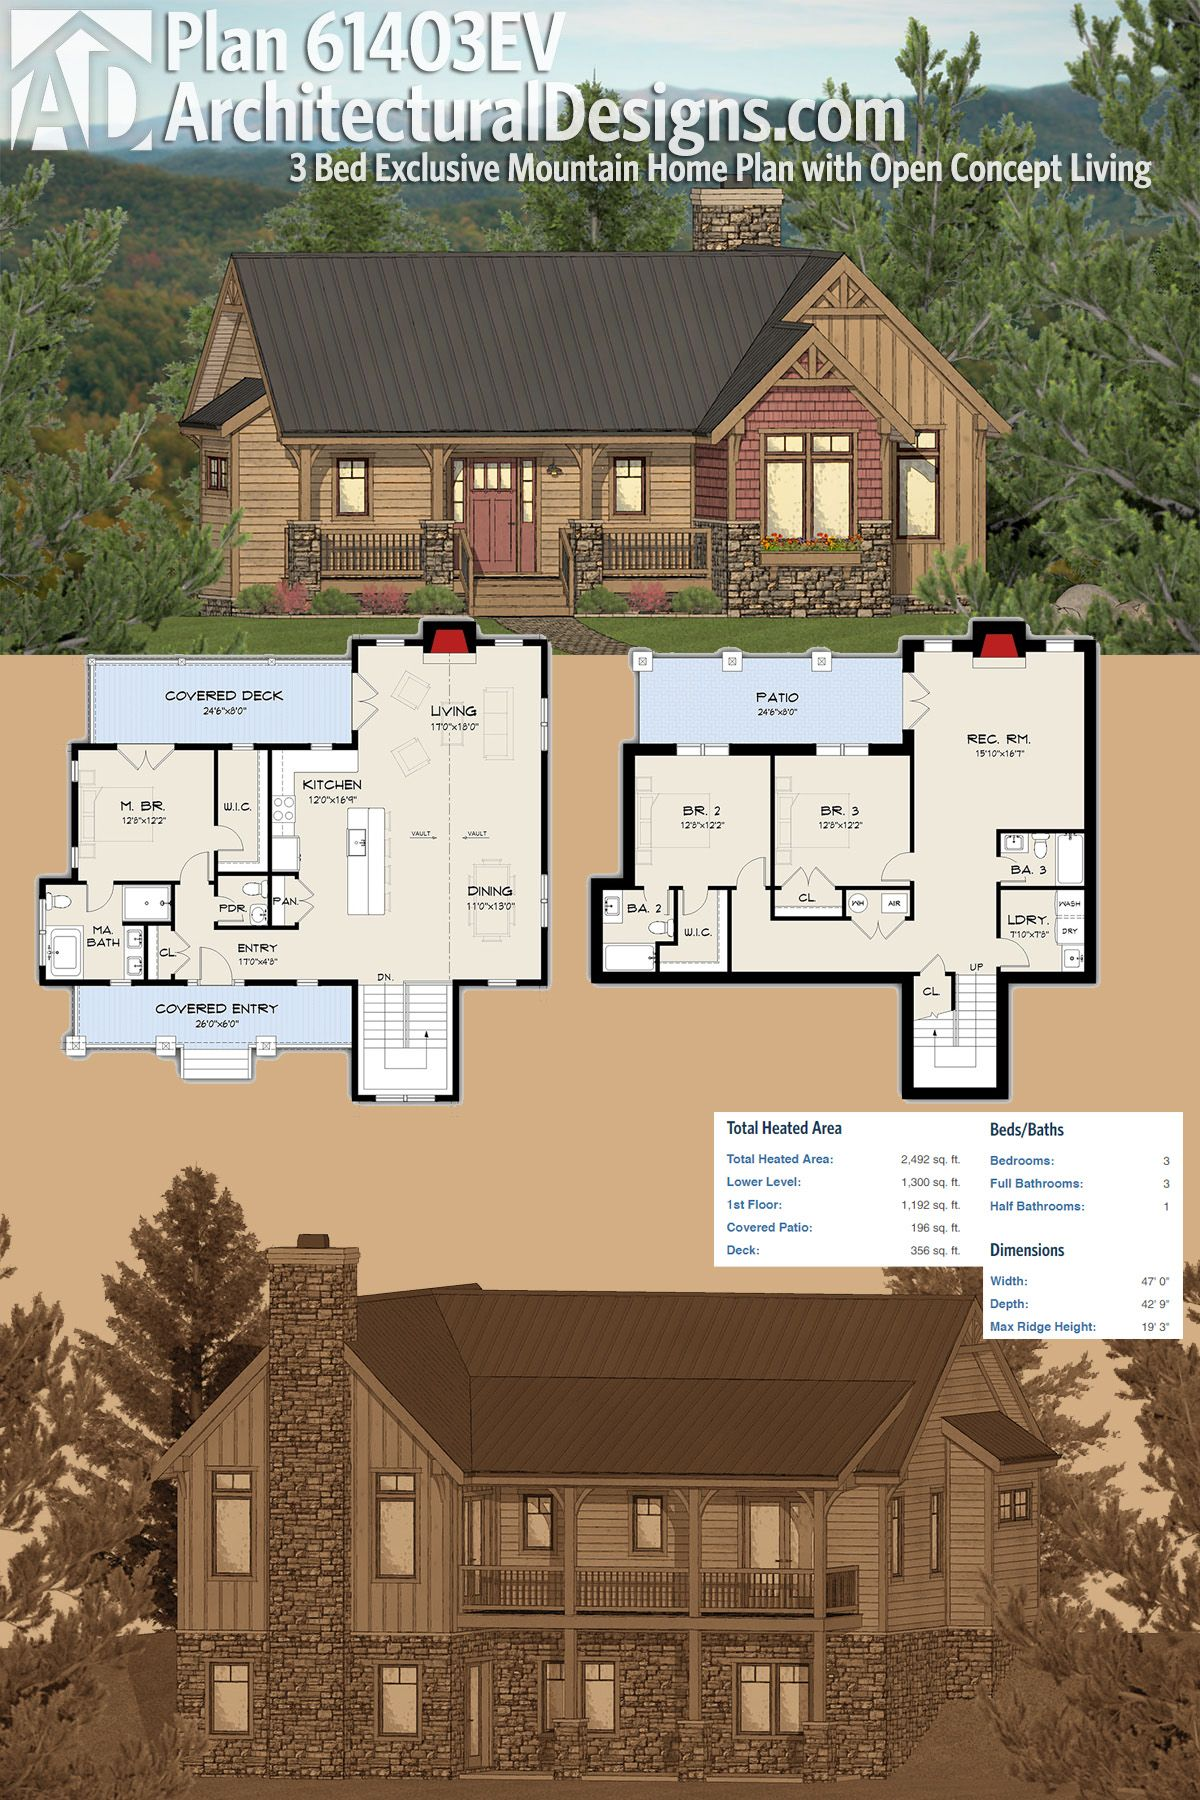 Architectural Designs 3 Bed Mountain House Plan 61403ev Comes With A Finished Lower Level Making It Gre Mountain House Plans House Plans Sloping Lot House Plan